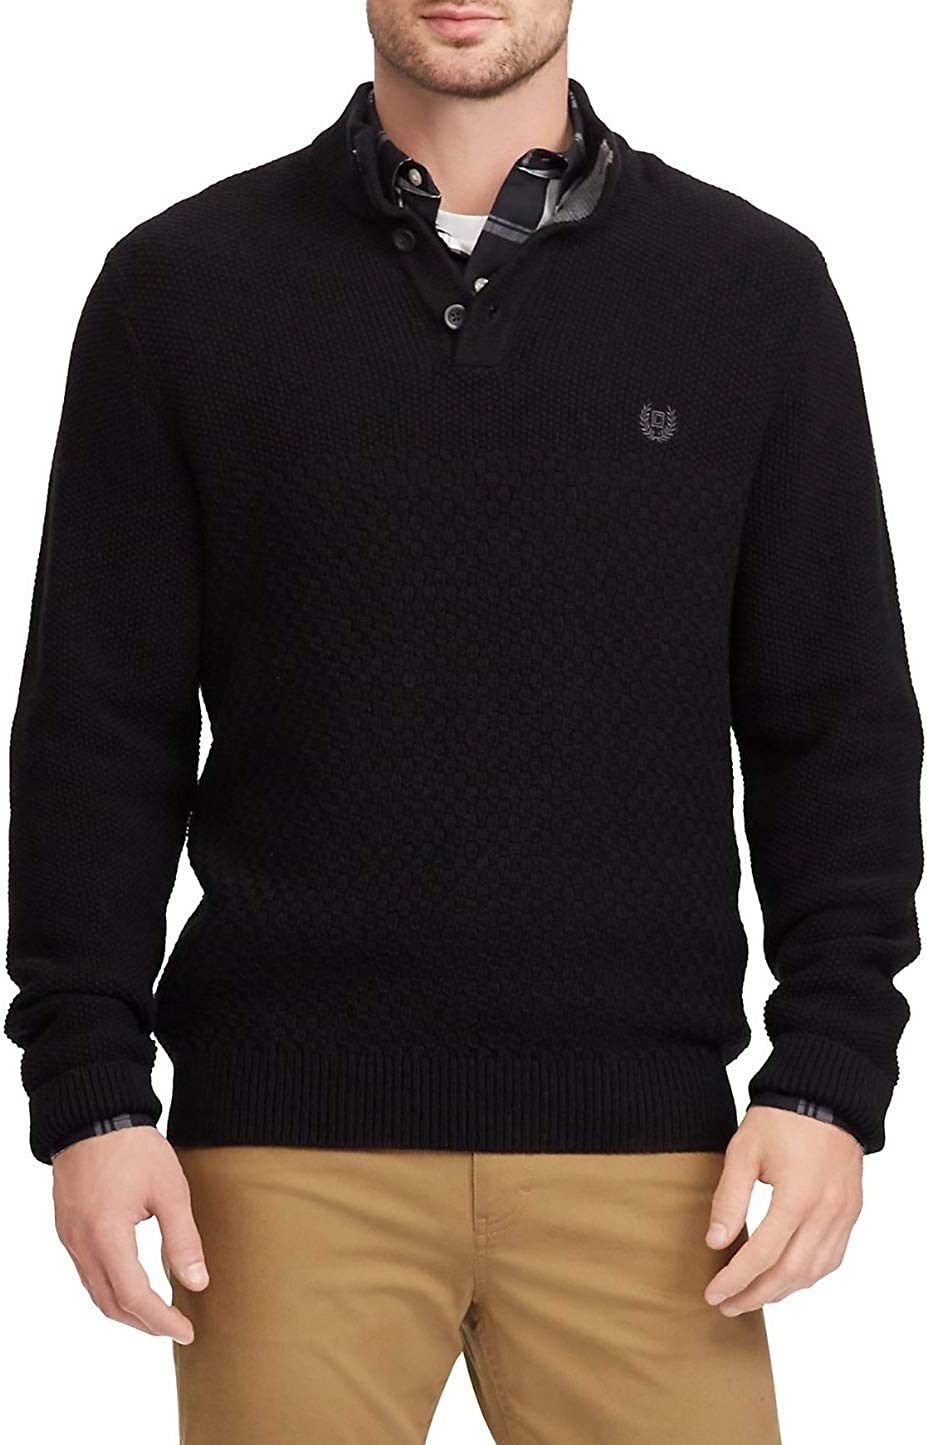 Chaps Men's Cotton Mockneck with Elbow Patches Pullover Sweater